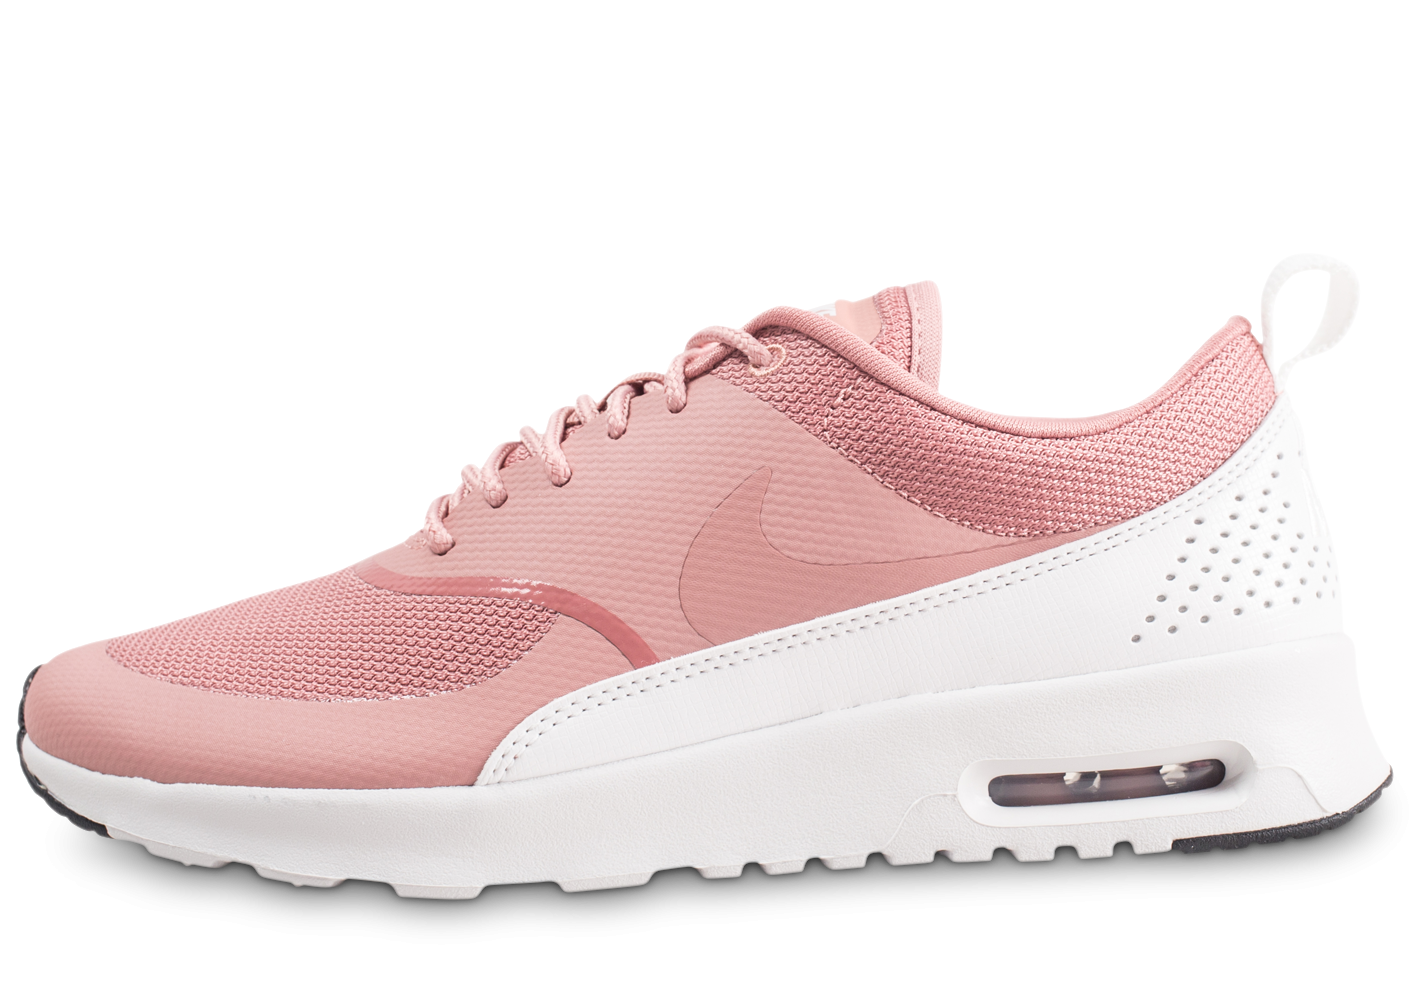 grossiste 01dfe 8c2ac Nike Air Max Thea rose et blanche femme